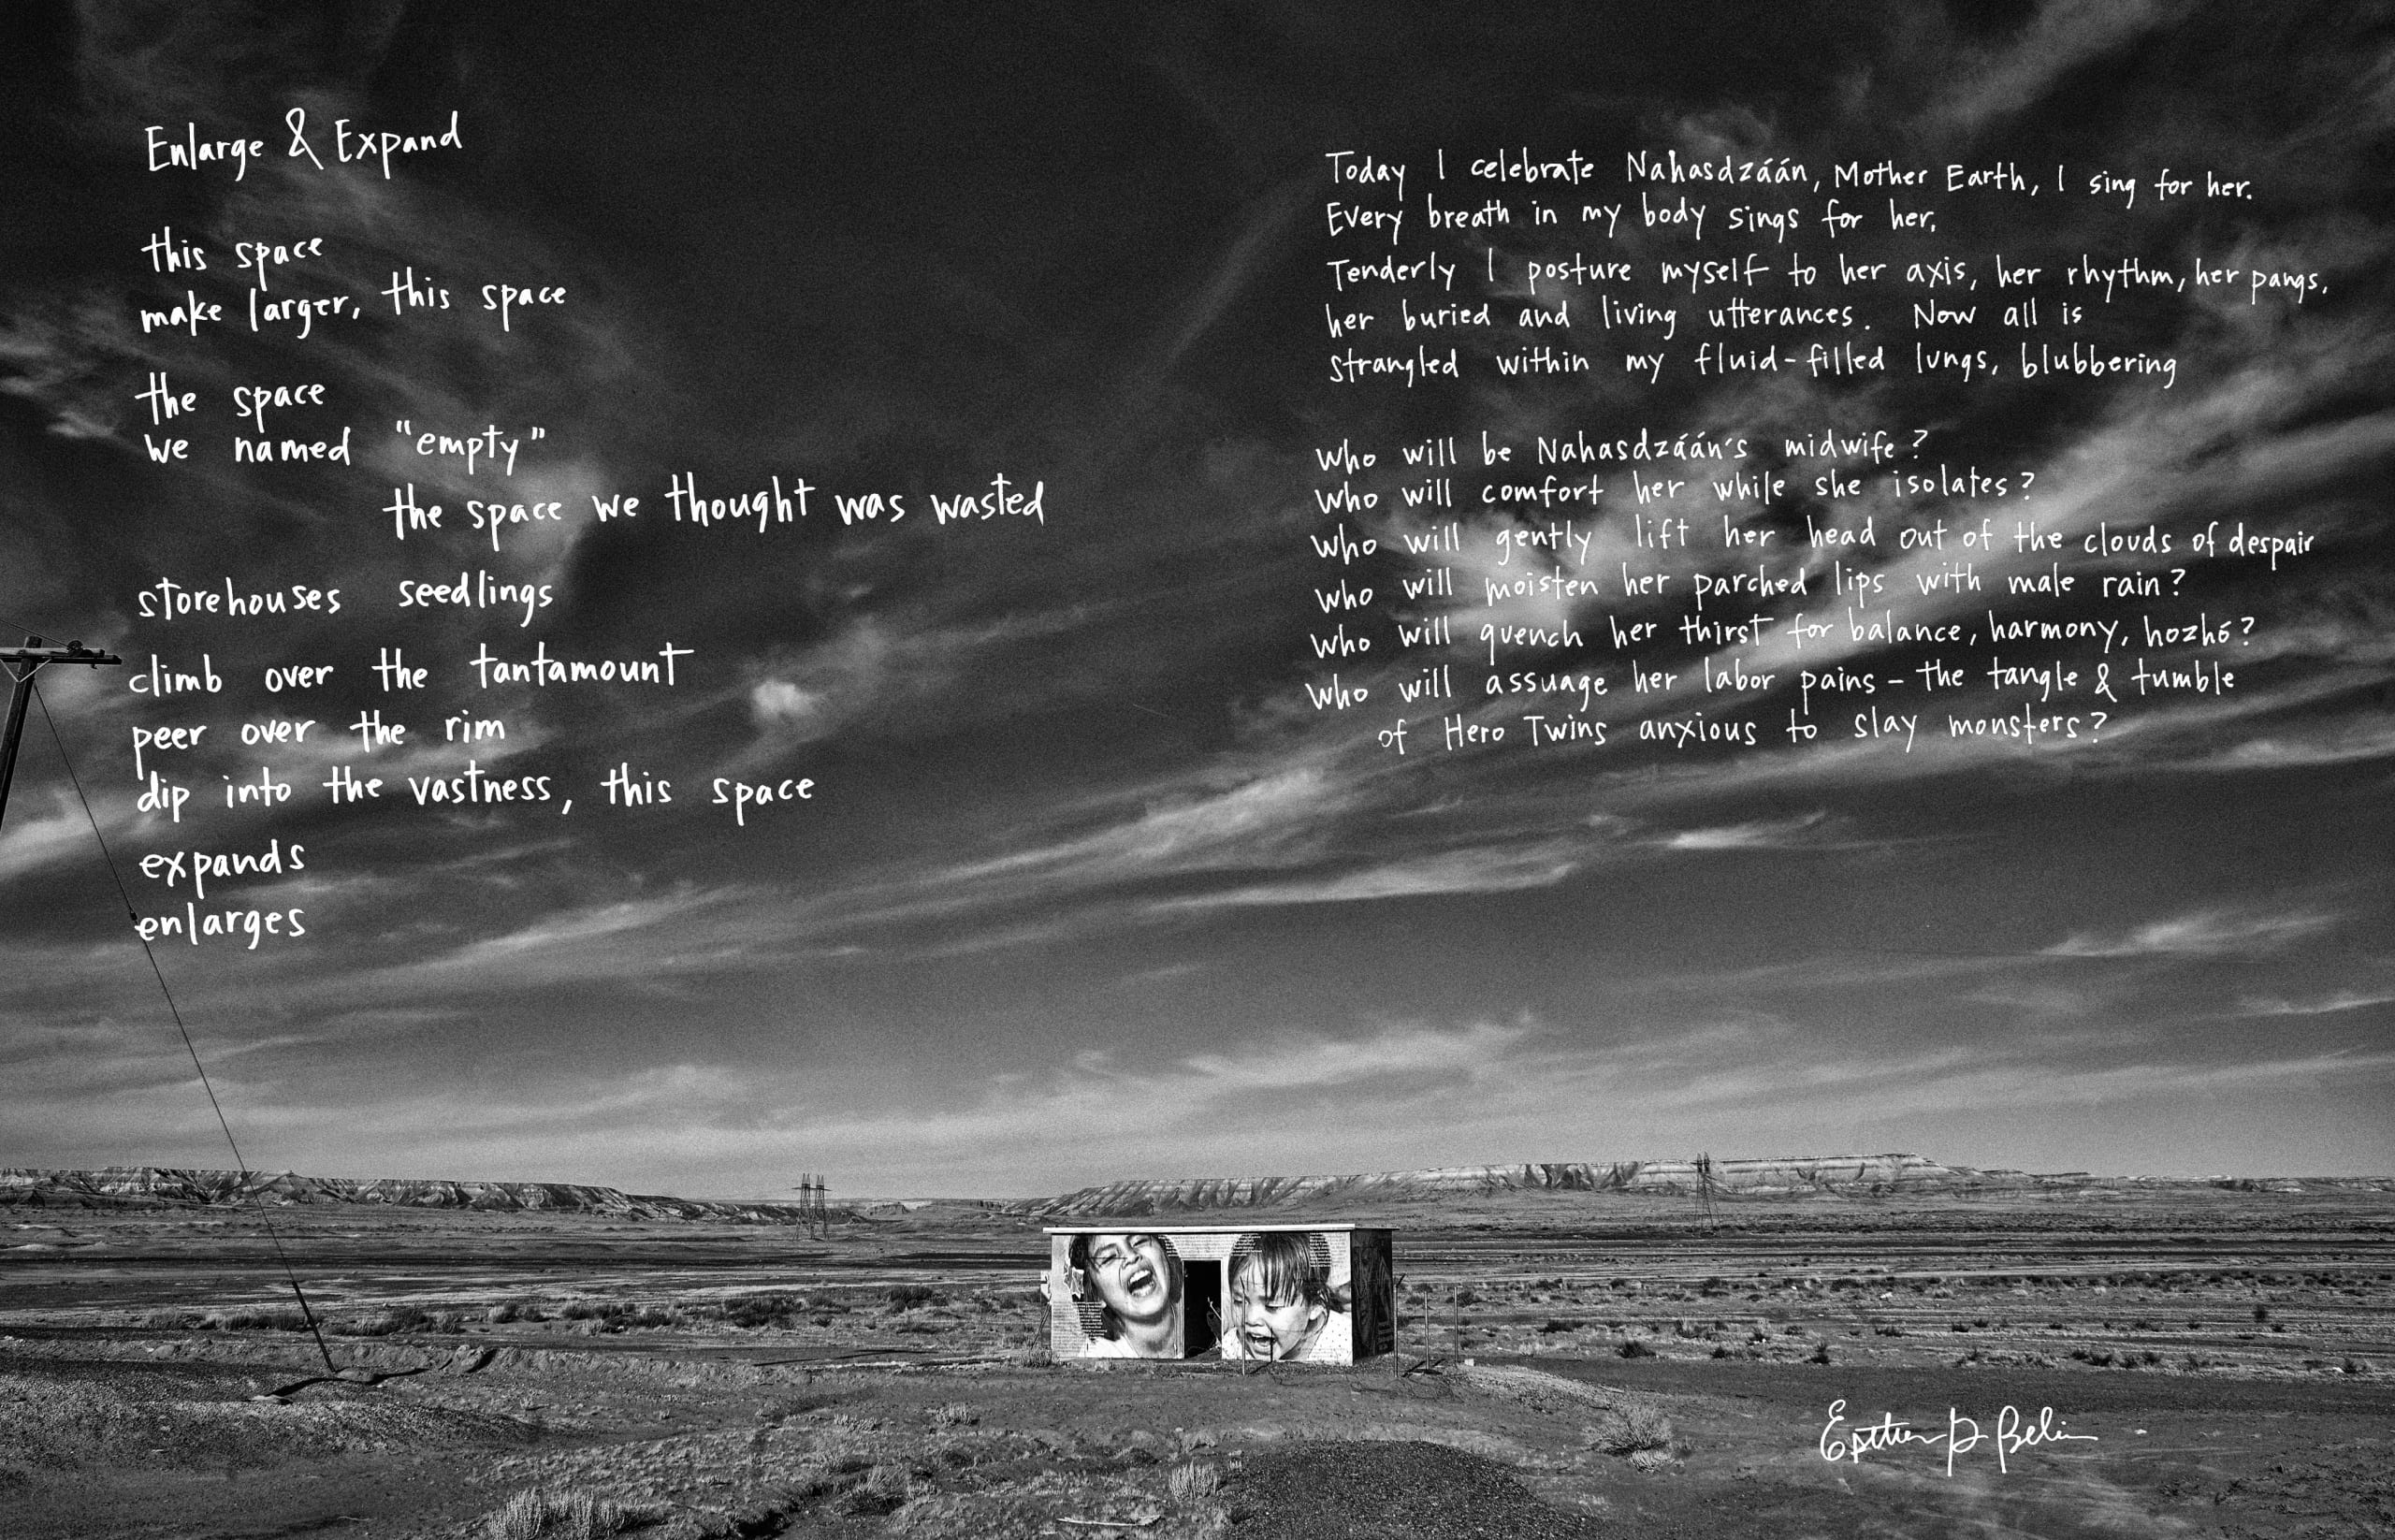 Black and white photo of sky occupying two-thirds of frame; a small, flat-roofed, rectangular building at center front is wrapped in an enlarged black and white photographic mural of two young children, laughing; a handwritten poem is printed in white text against the sky